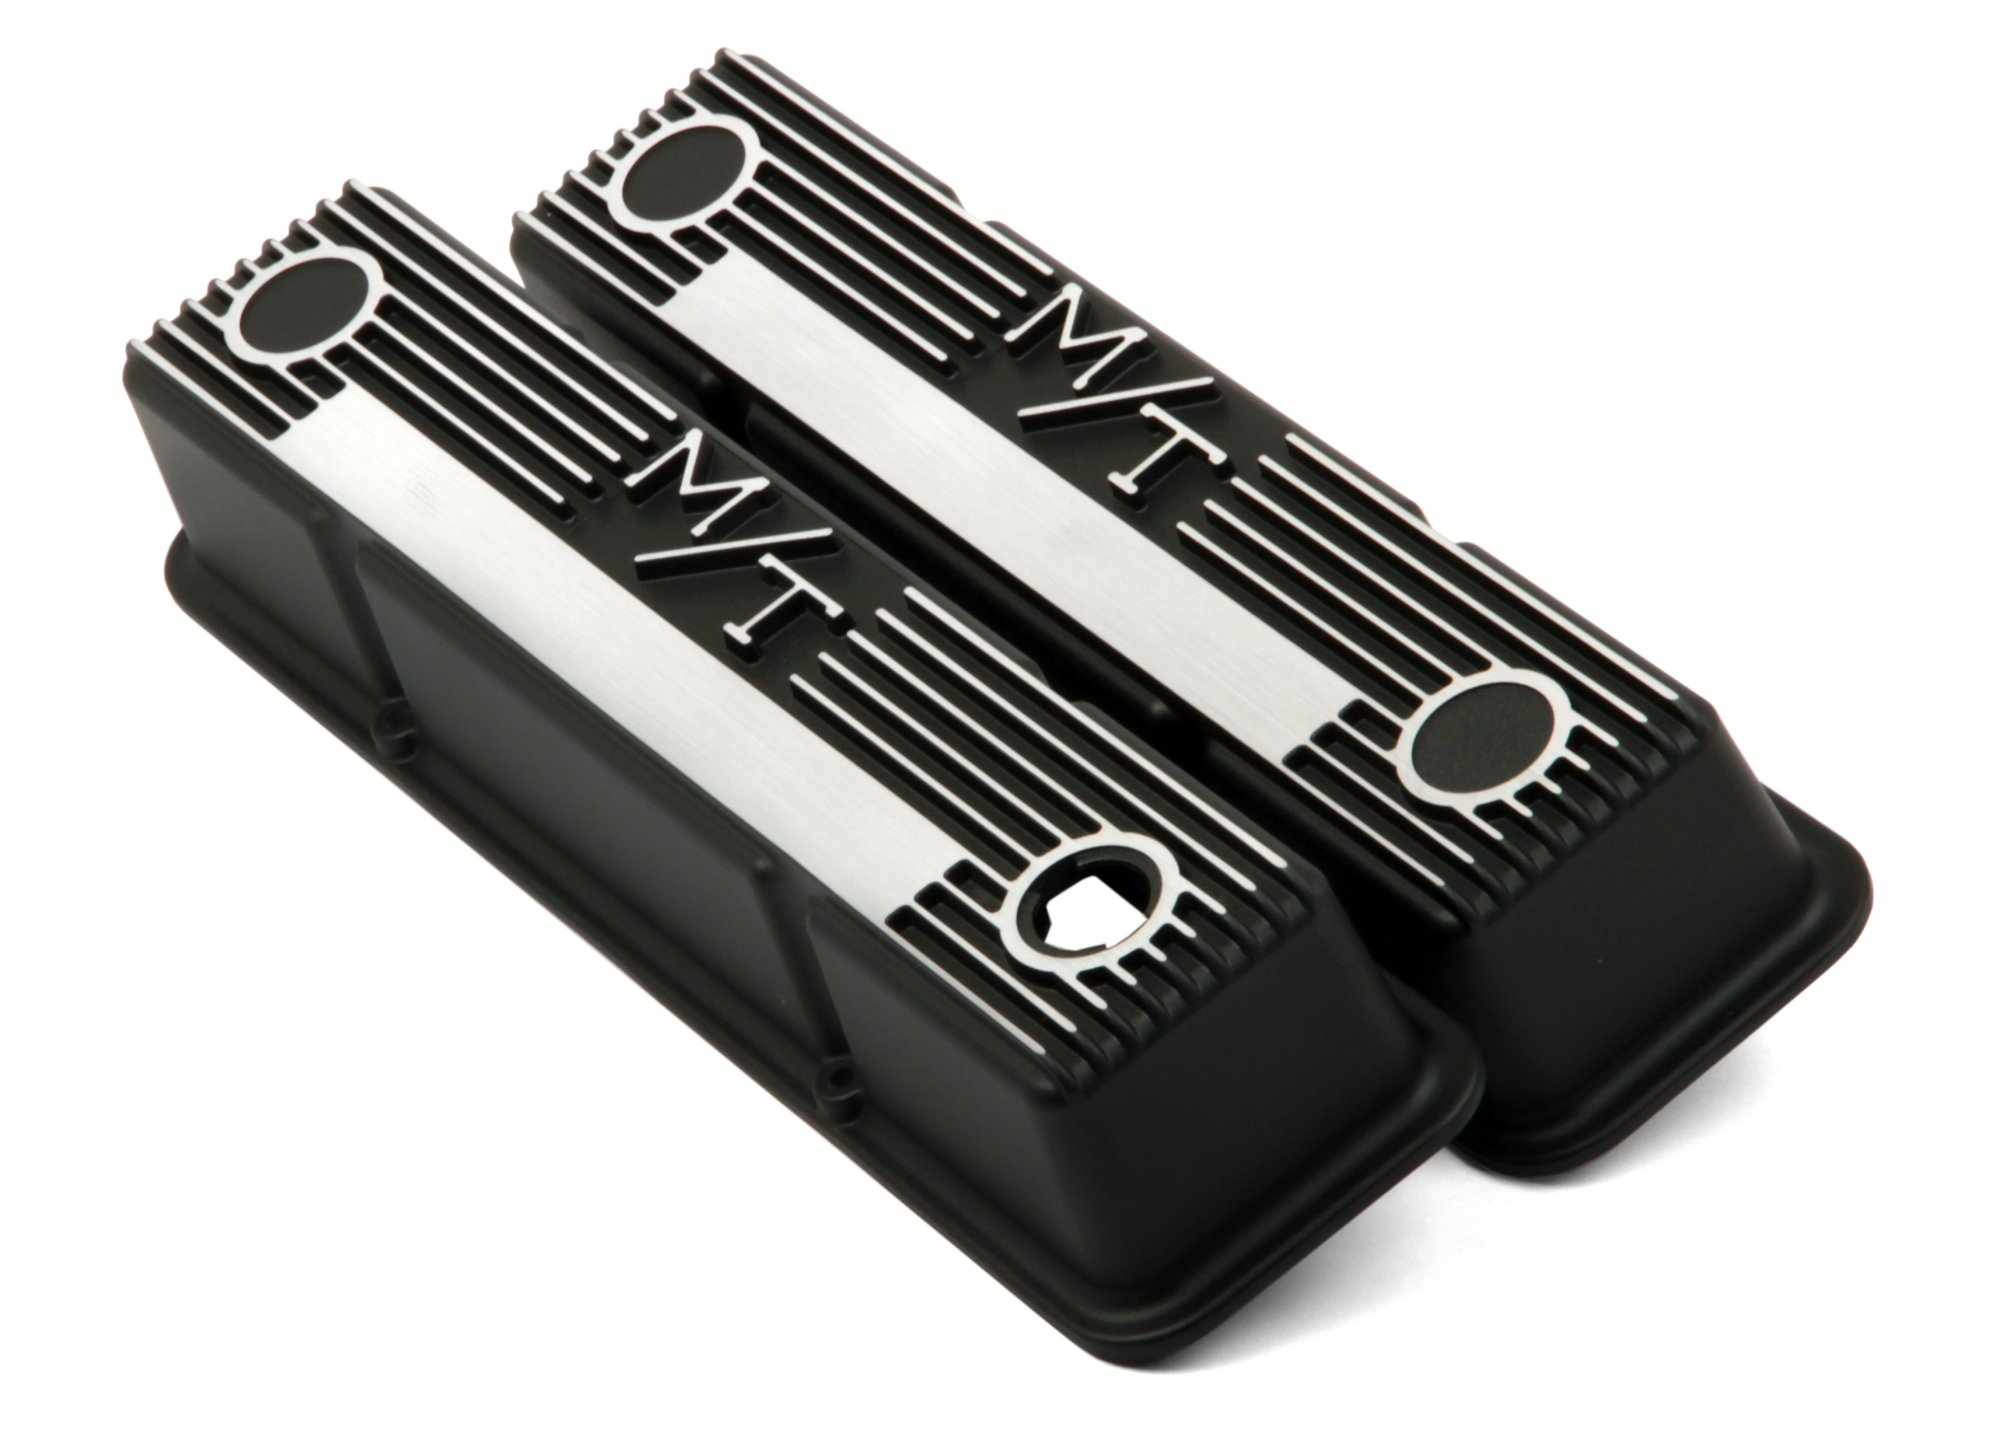 hight resolution of 241 83 m t valve covers for small block chevy engines satin